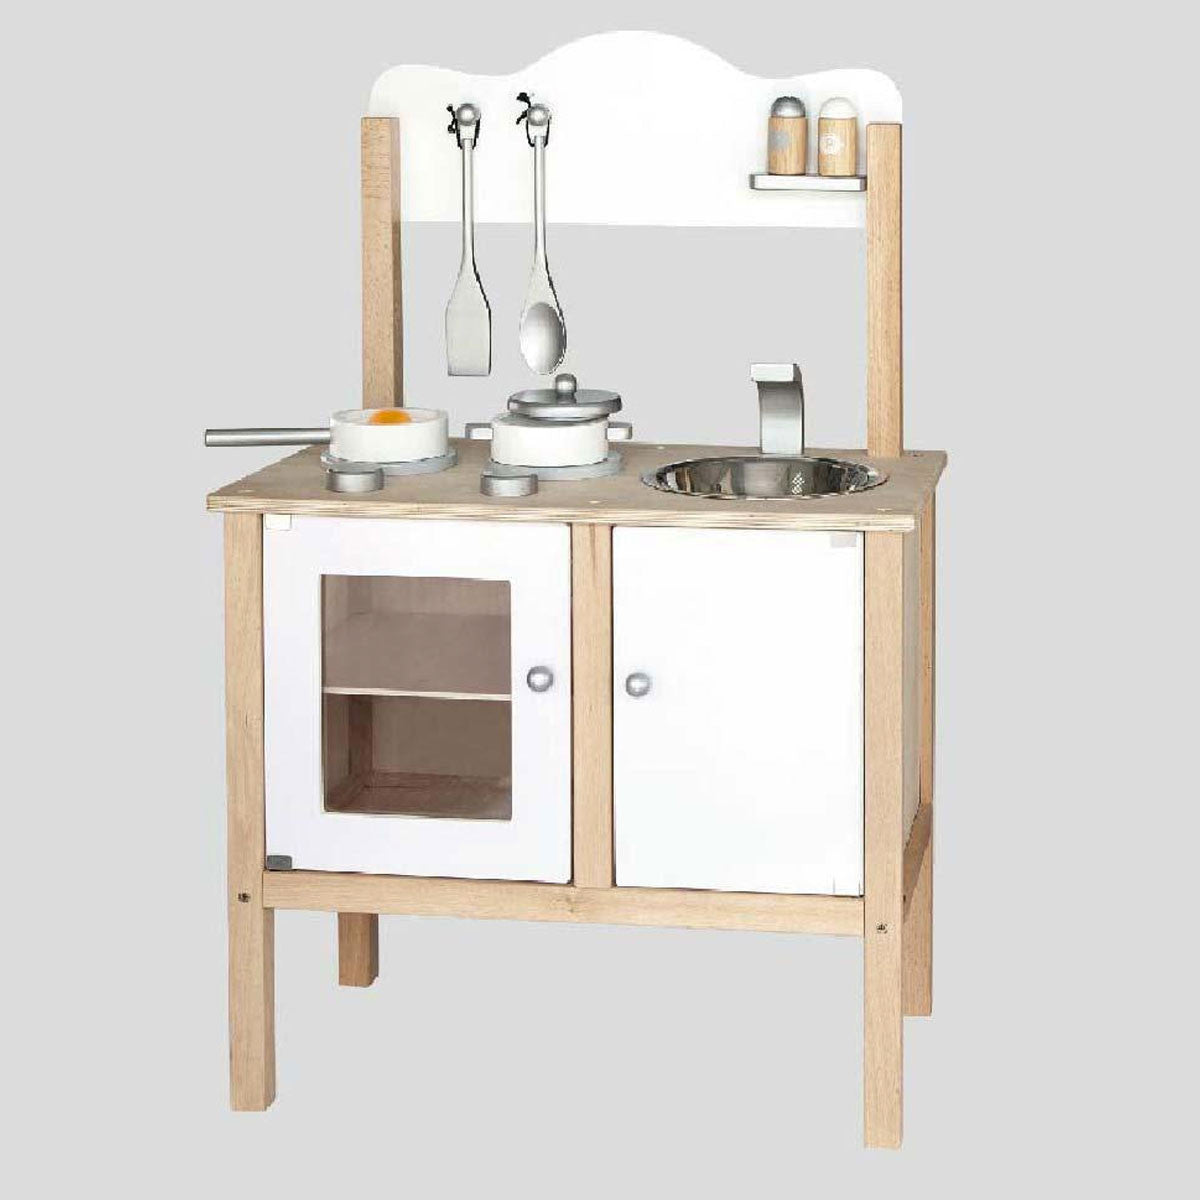 Ply White and Silver Toy Kitchen with Accessories Little Earth Nest Toy Kitchens & Play Food at Little Earth Nest Eco Shop